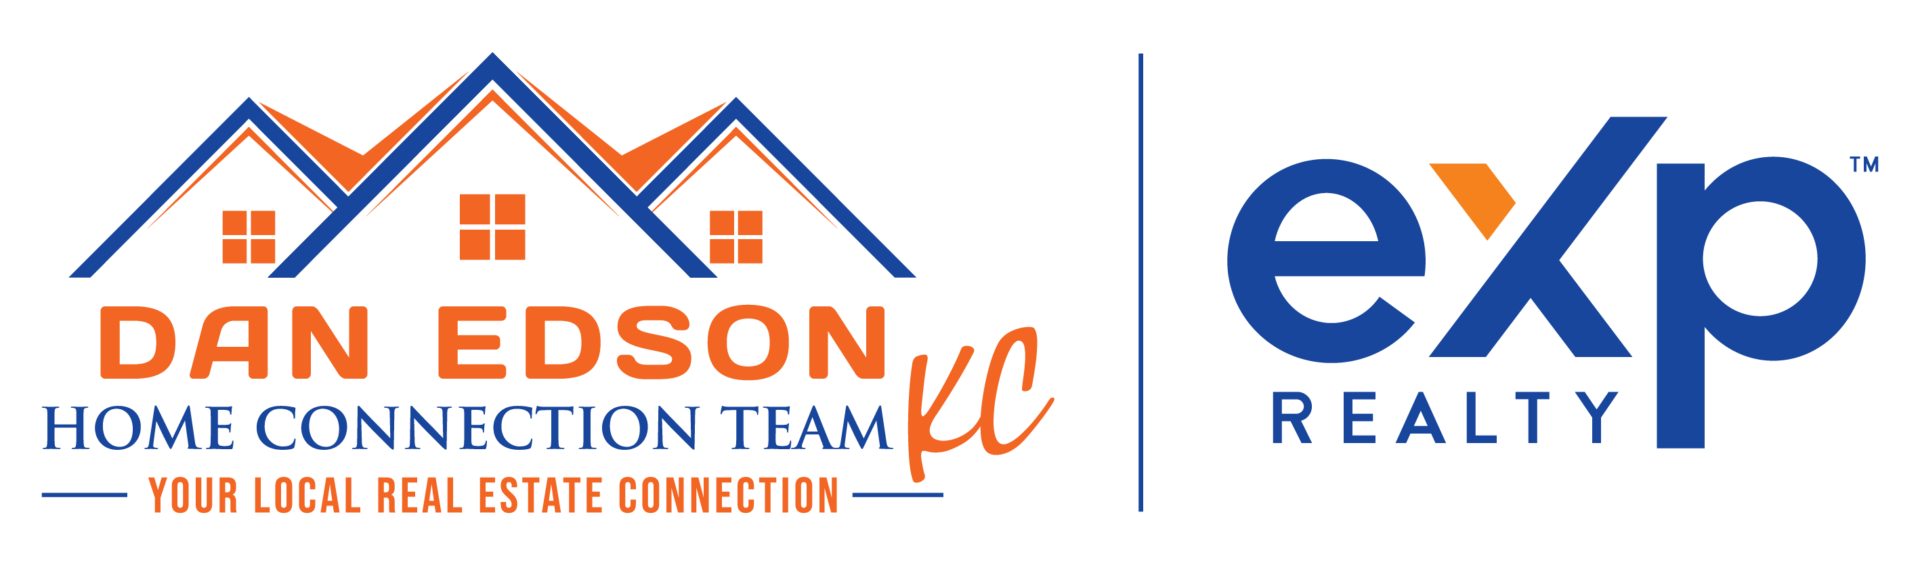 Dan Edson, Home Connection Team KC logo